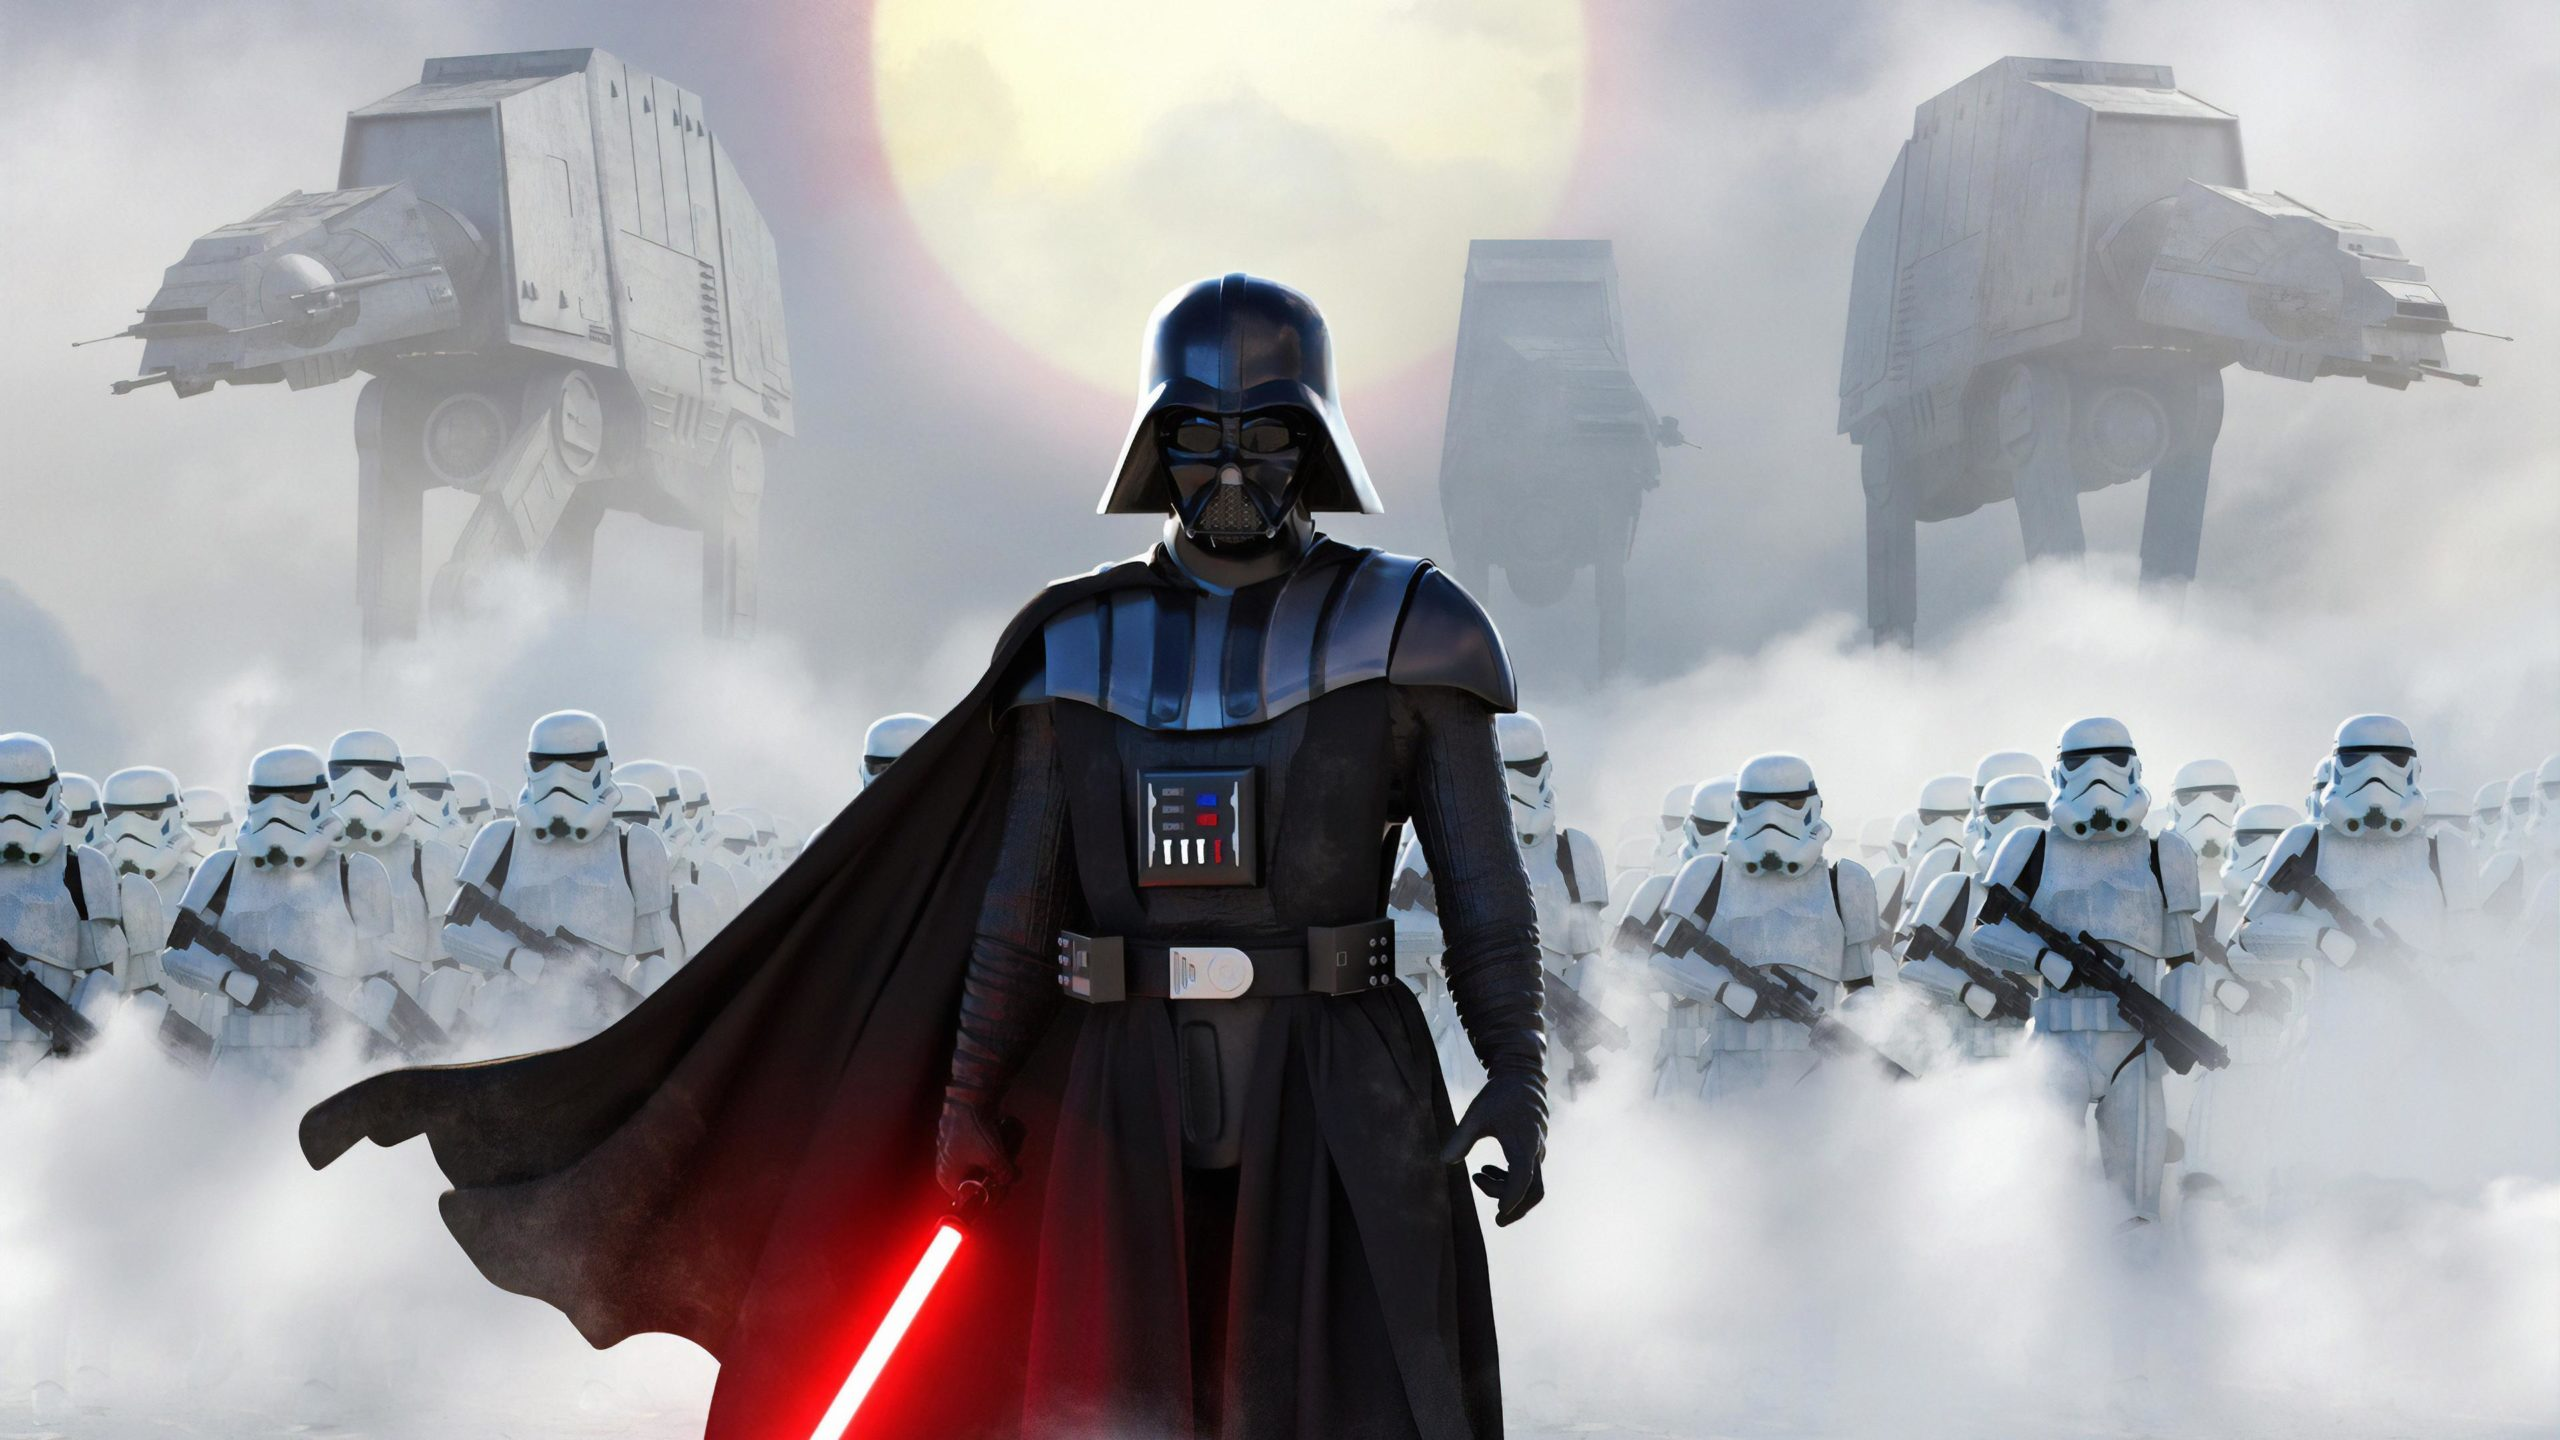 darth vader 1920x1080 wallpaper